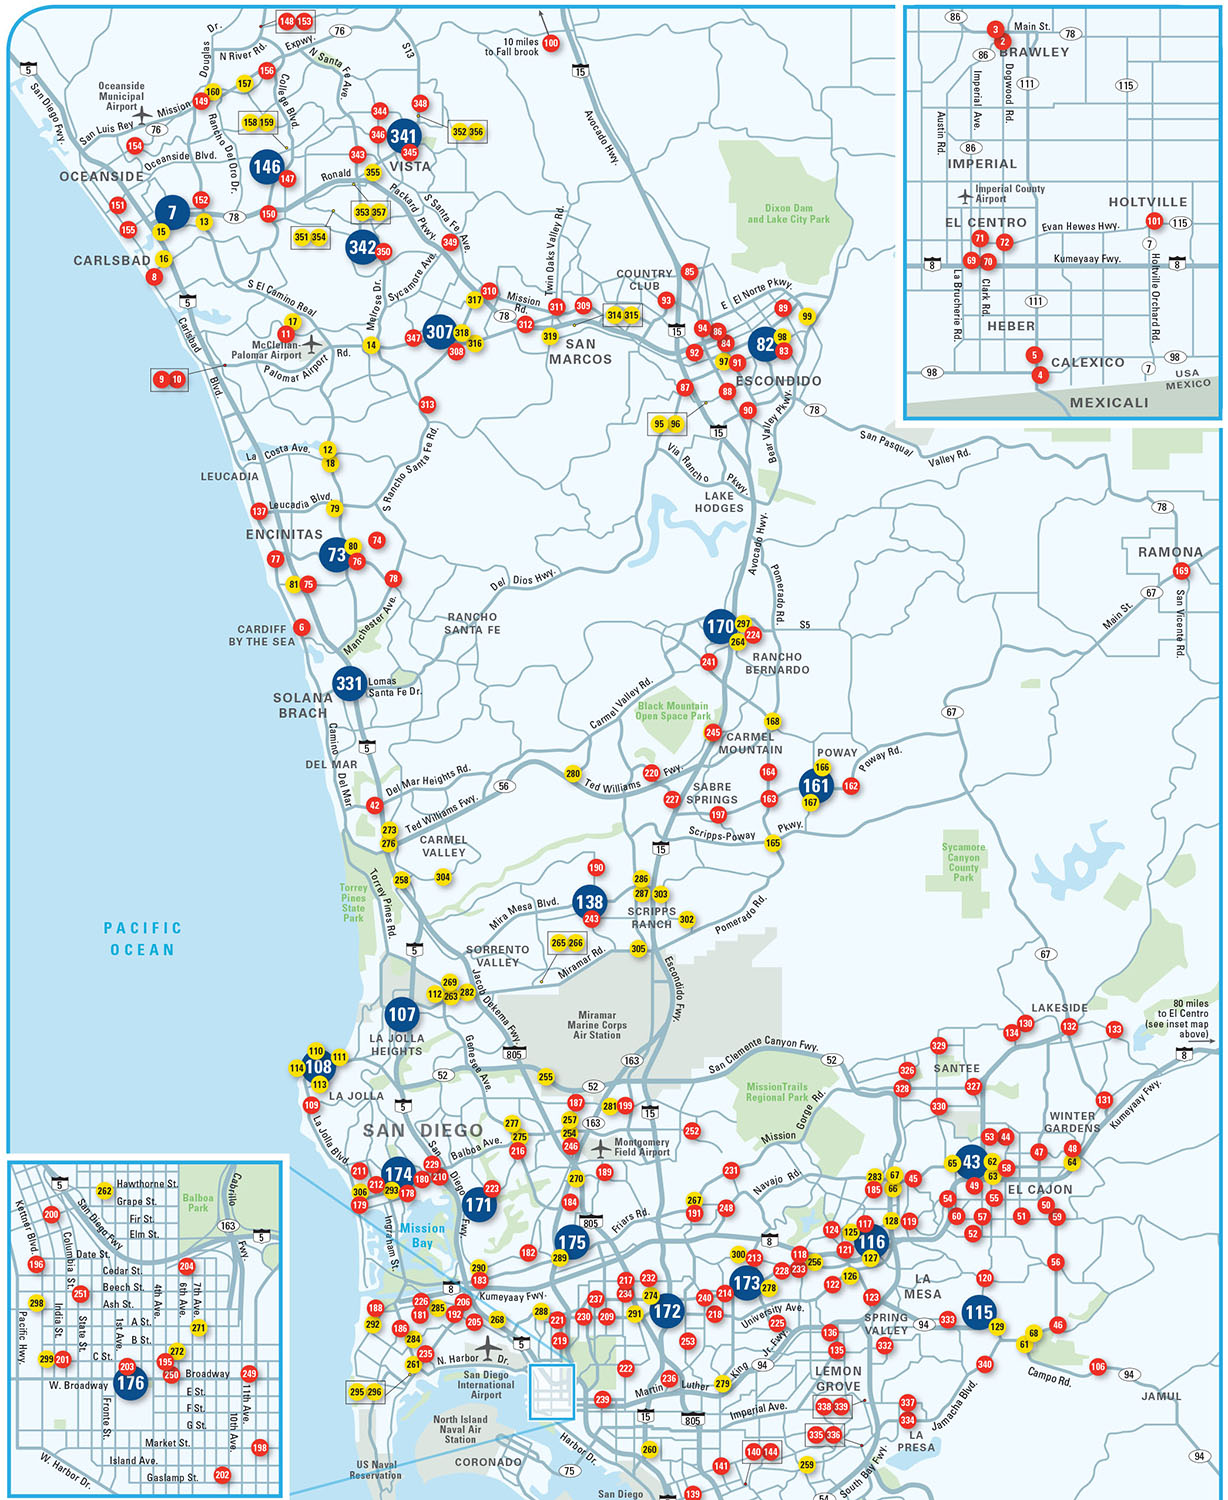 A section of a map for Citibank showing ATMs accessible to their card-holders, distinguishing Citibank offices from 7-Elevens and other venues. Copyright © Wunderman.